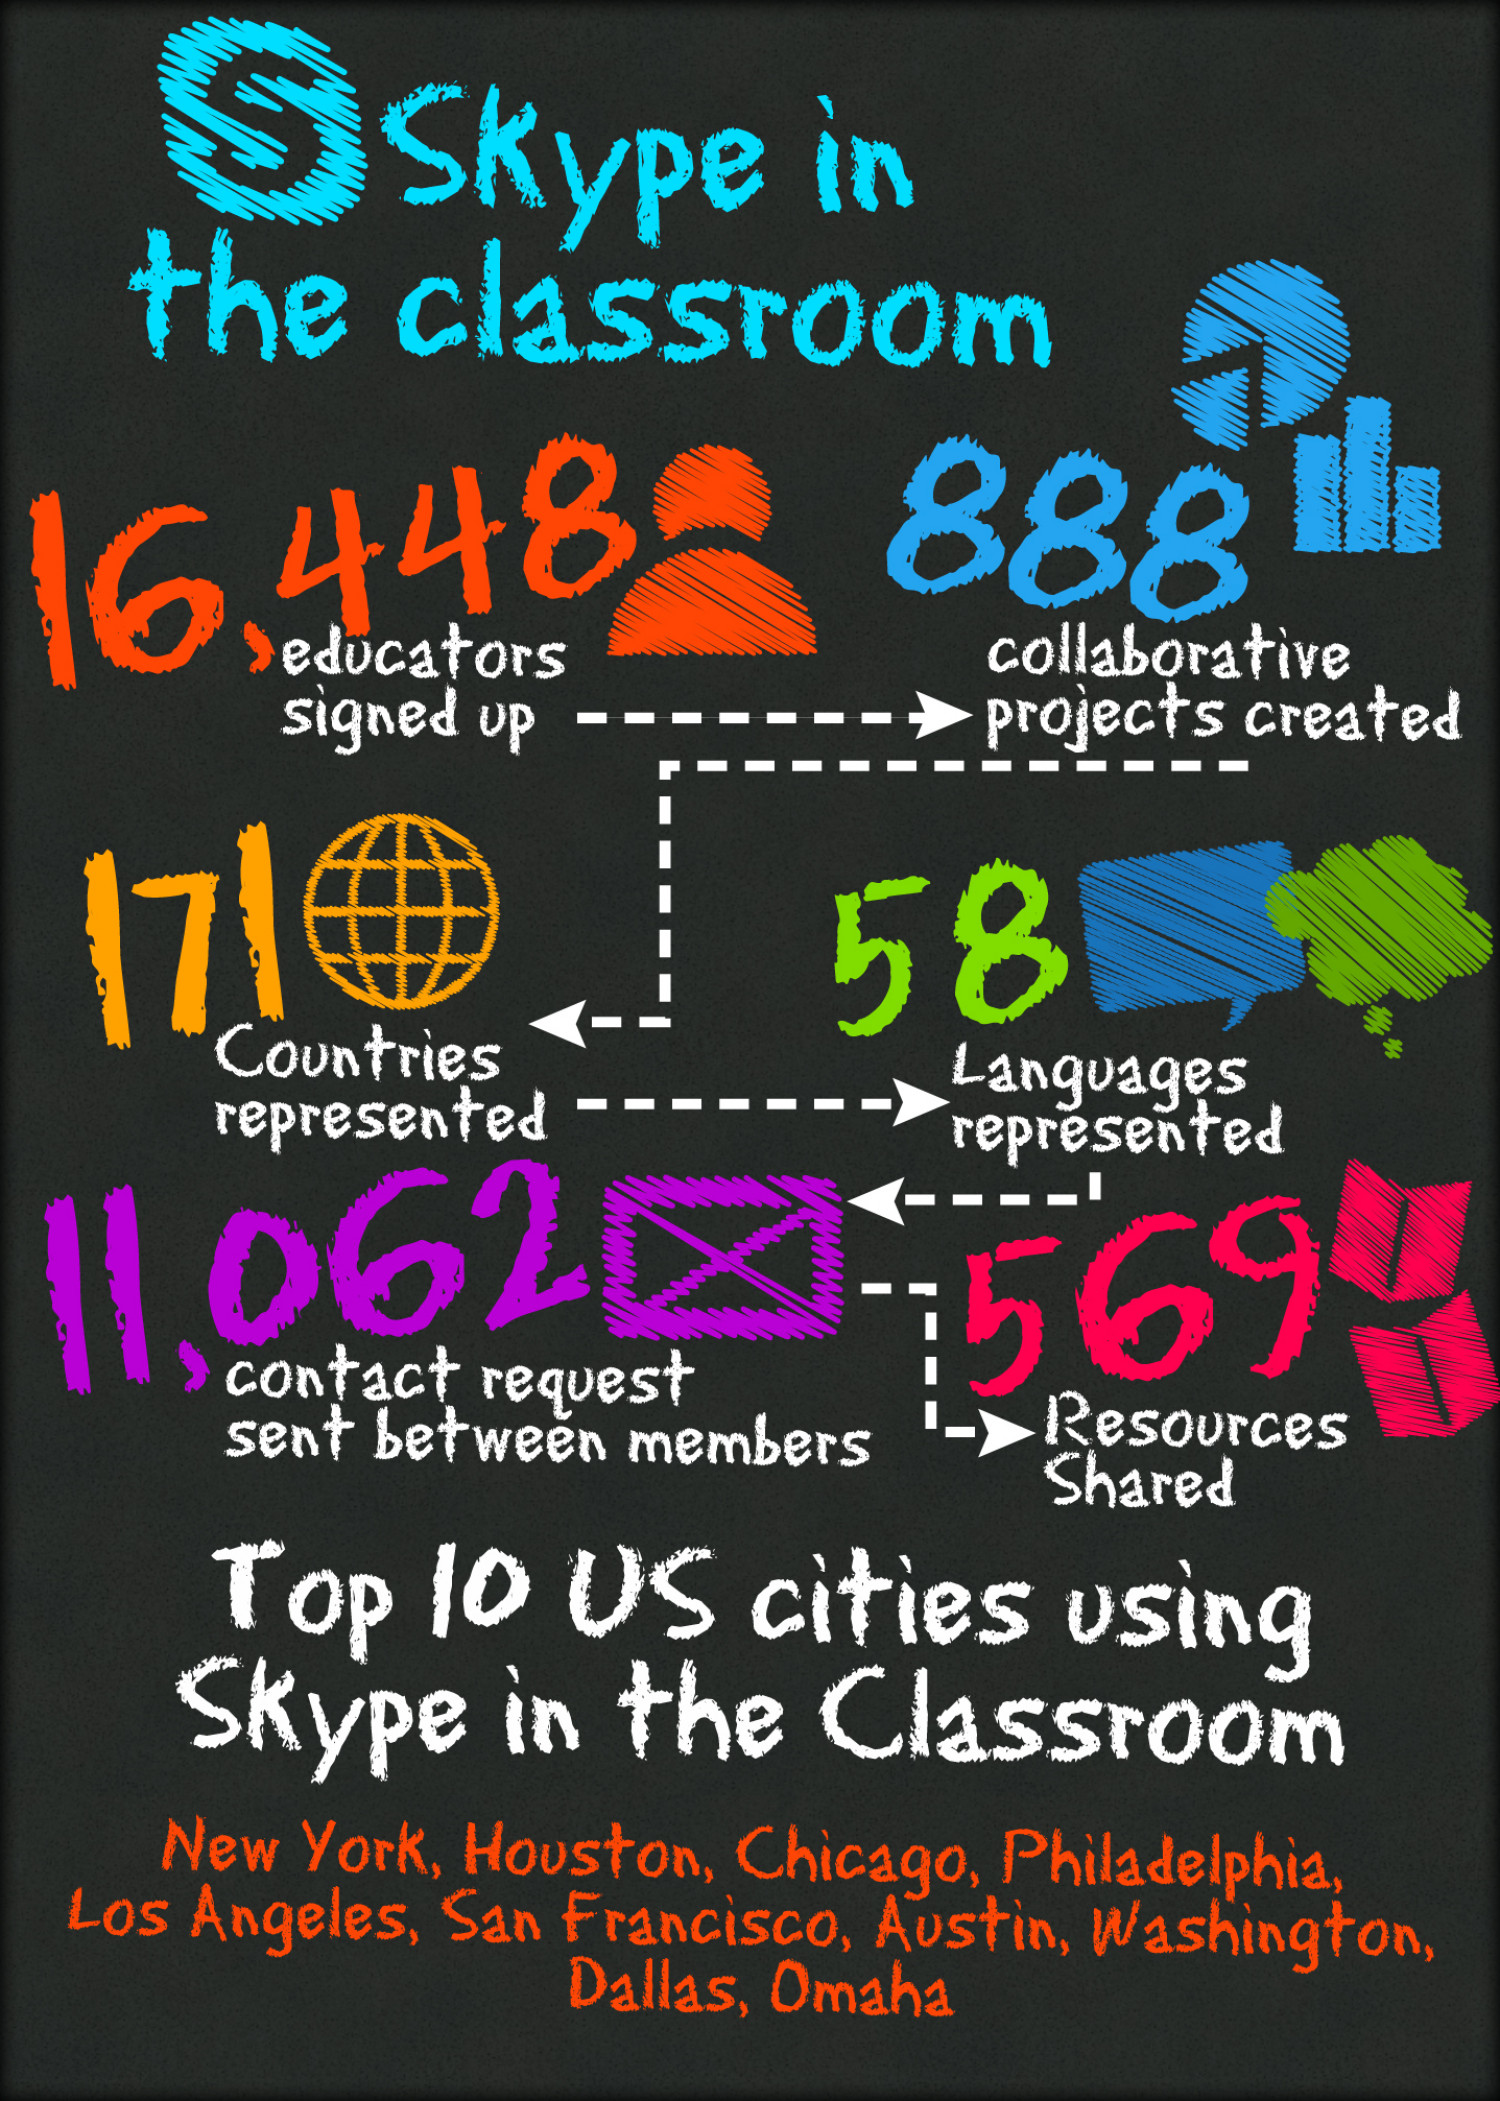 Skype in the Classroom Infographic